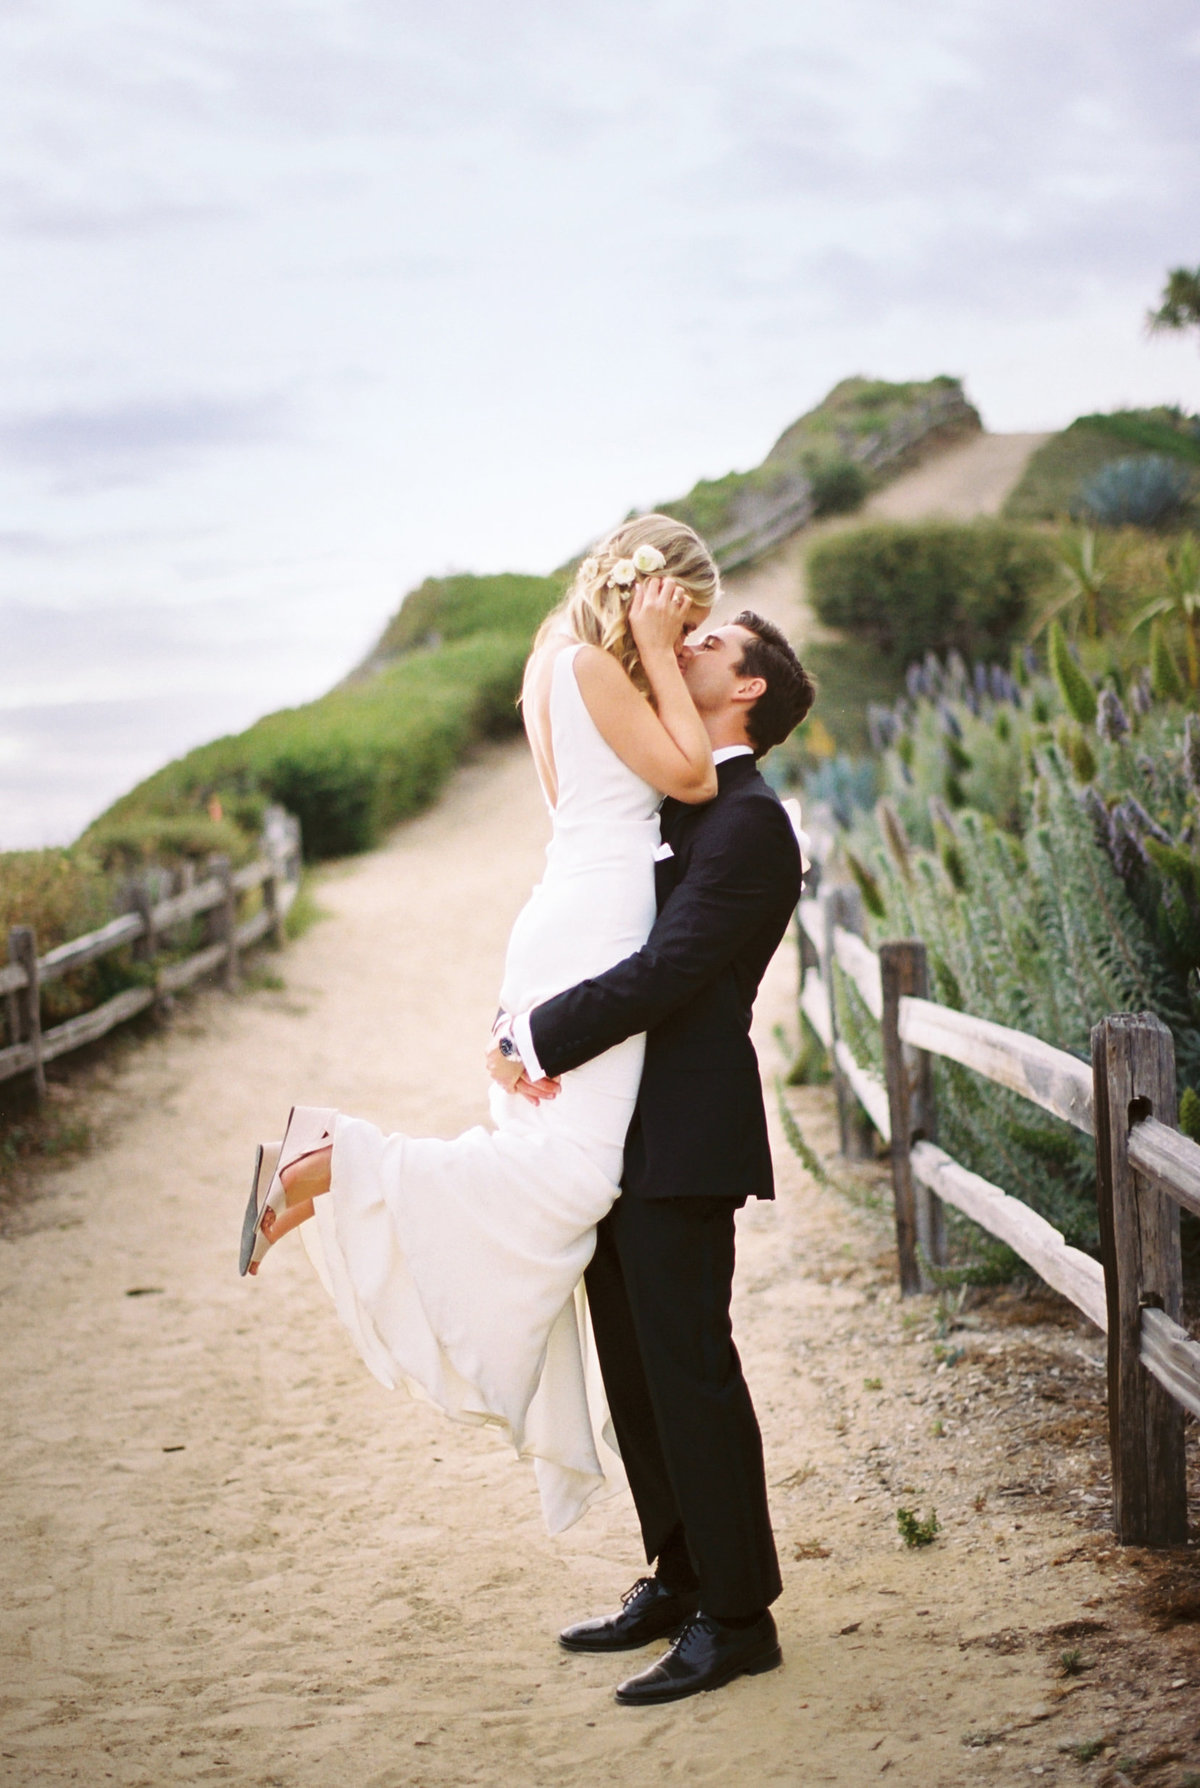 christianne_taylor_marika_fedalen_brian_olsen_bacara_weddings_wedding_christianne_taylor-21